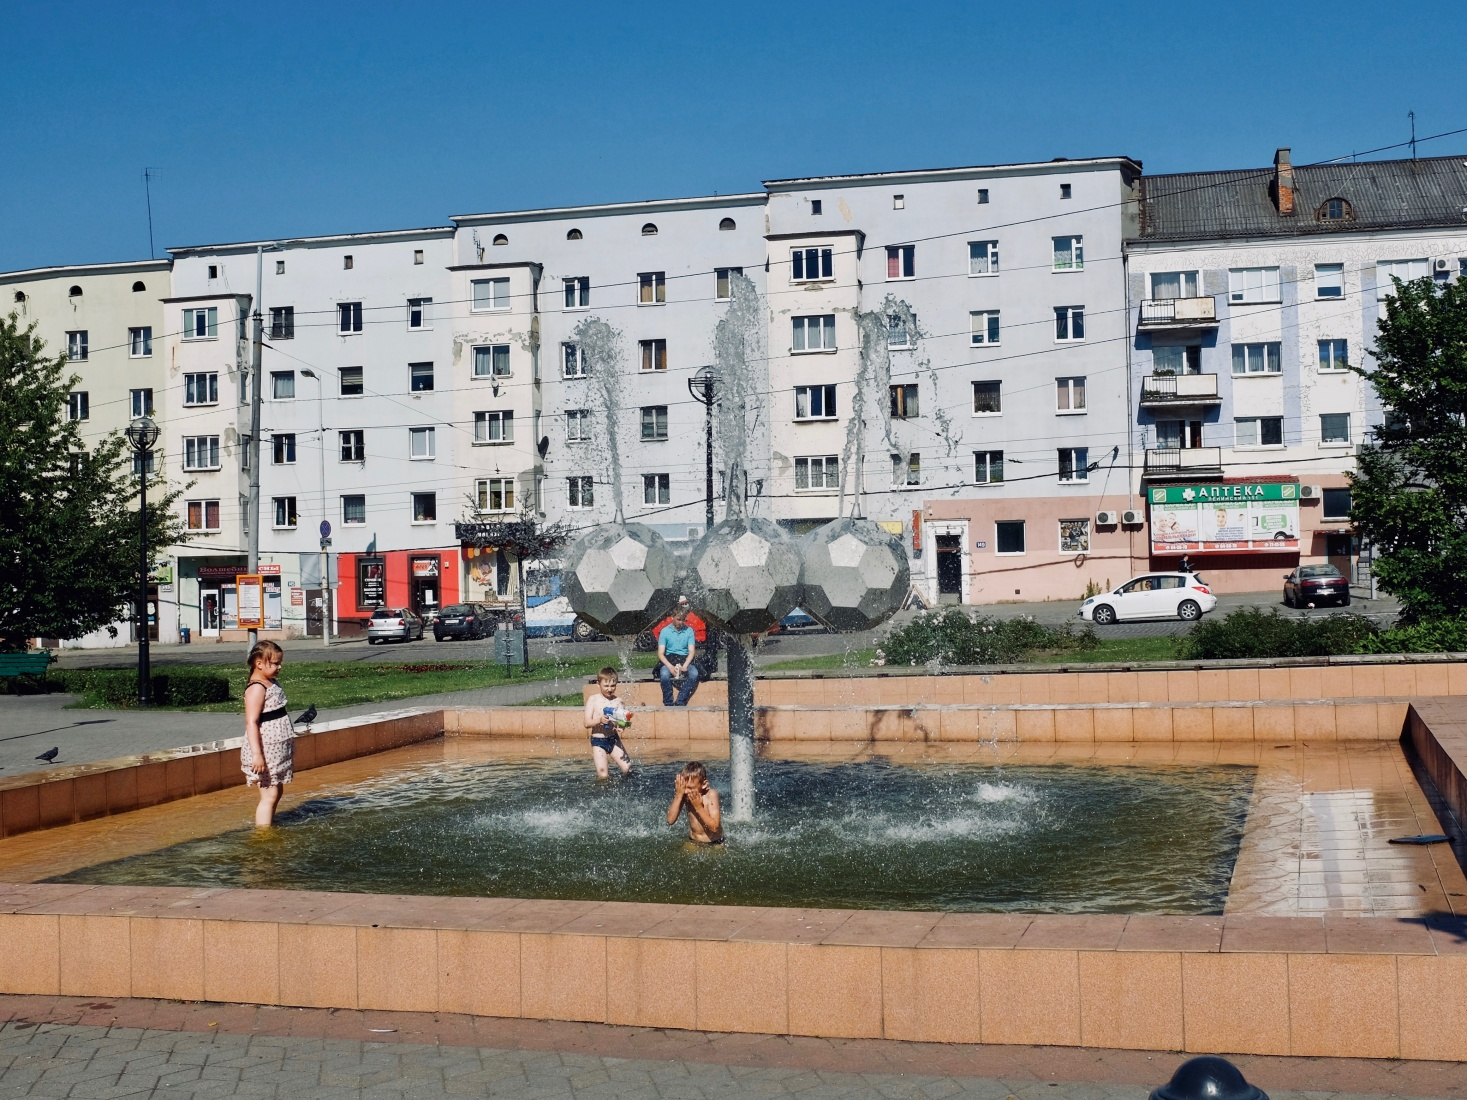 Fountain in Kaliningrad, Russia, where children play on a summer day.